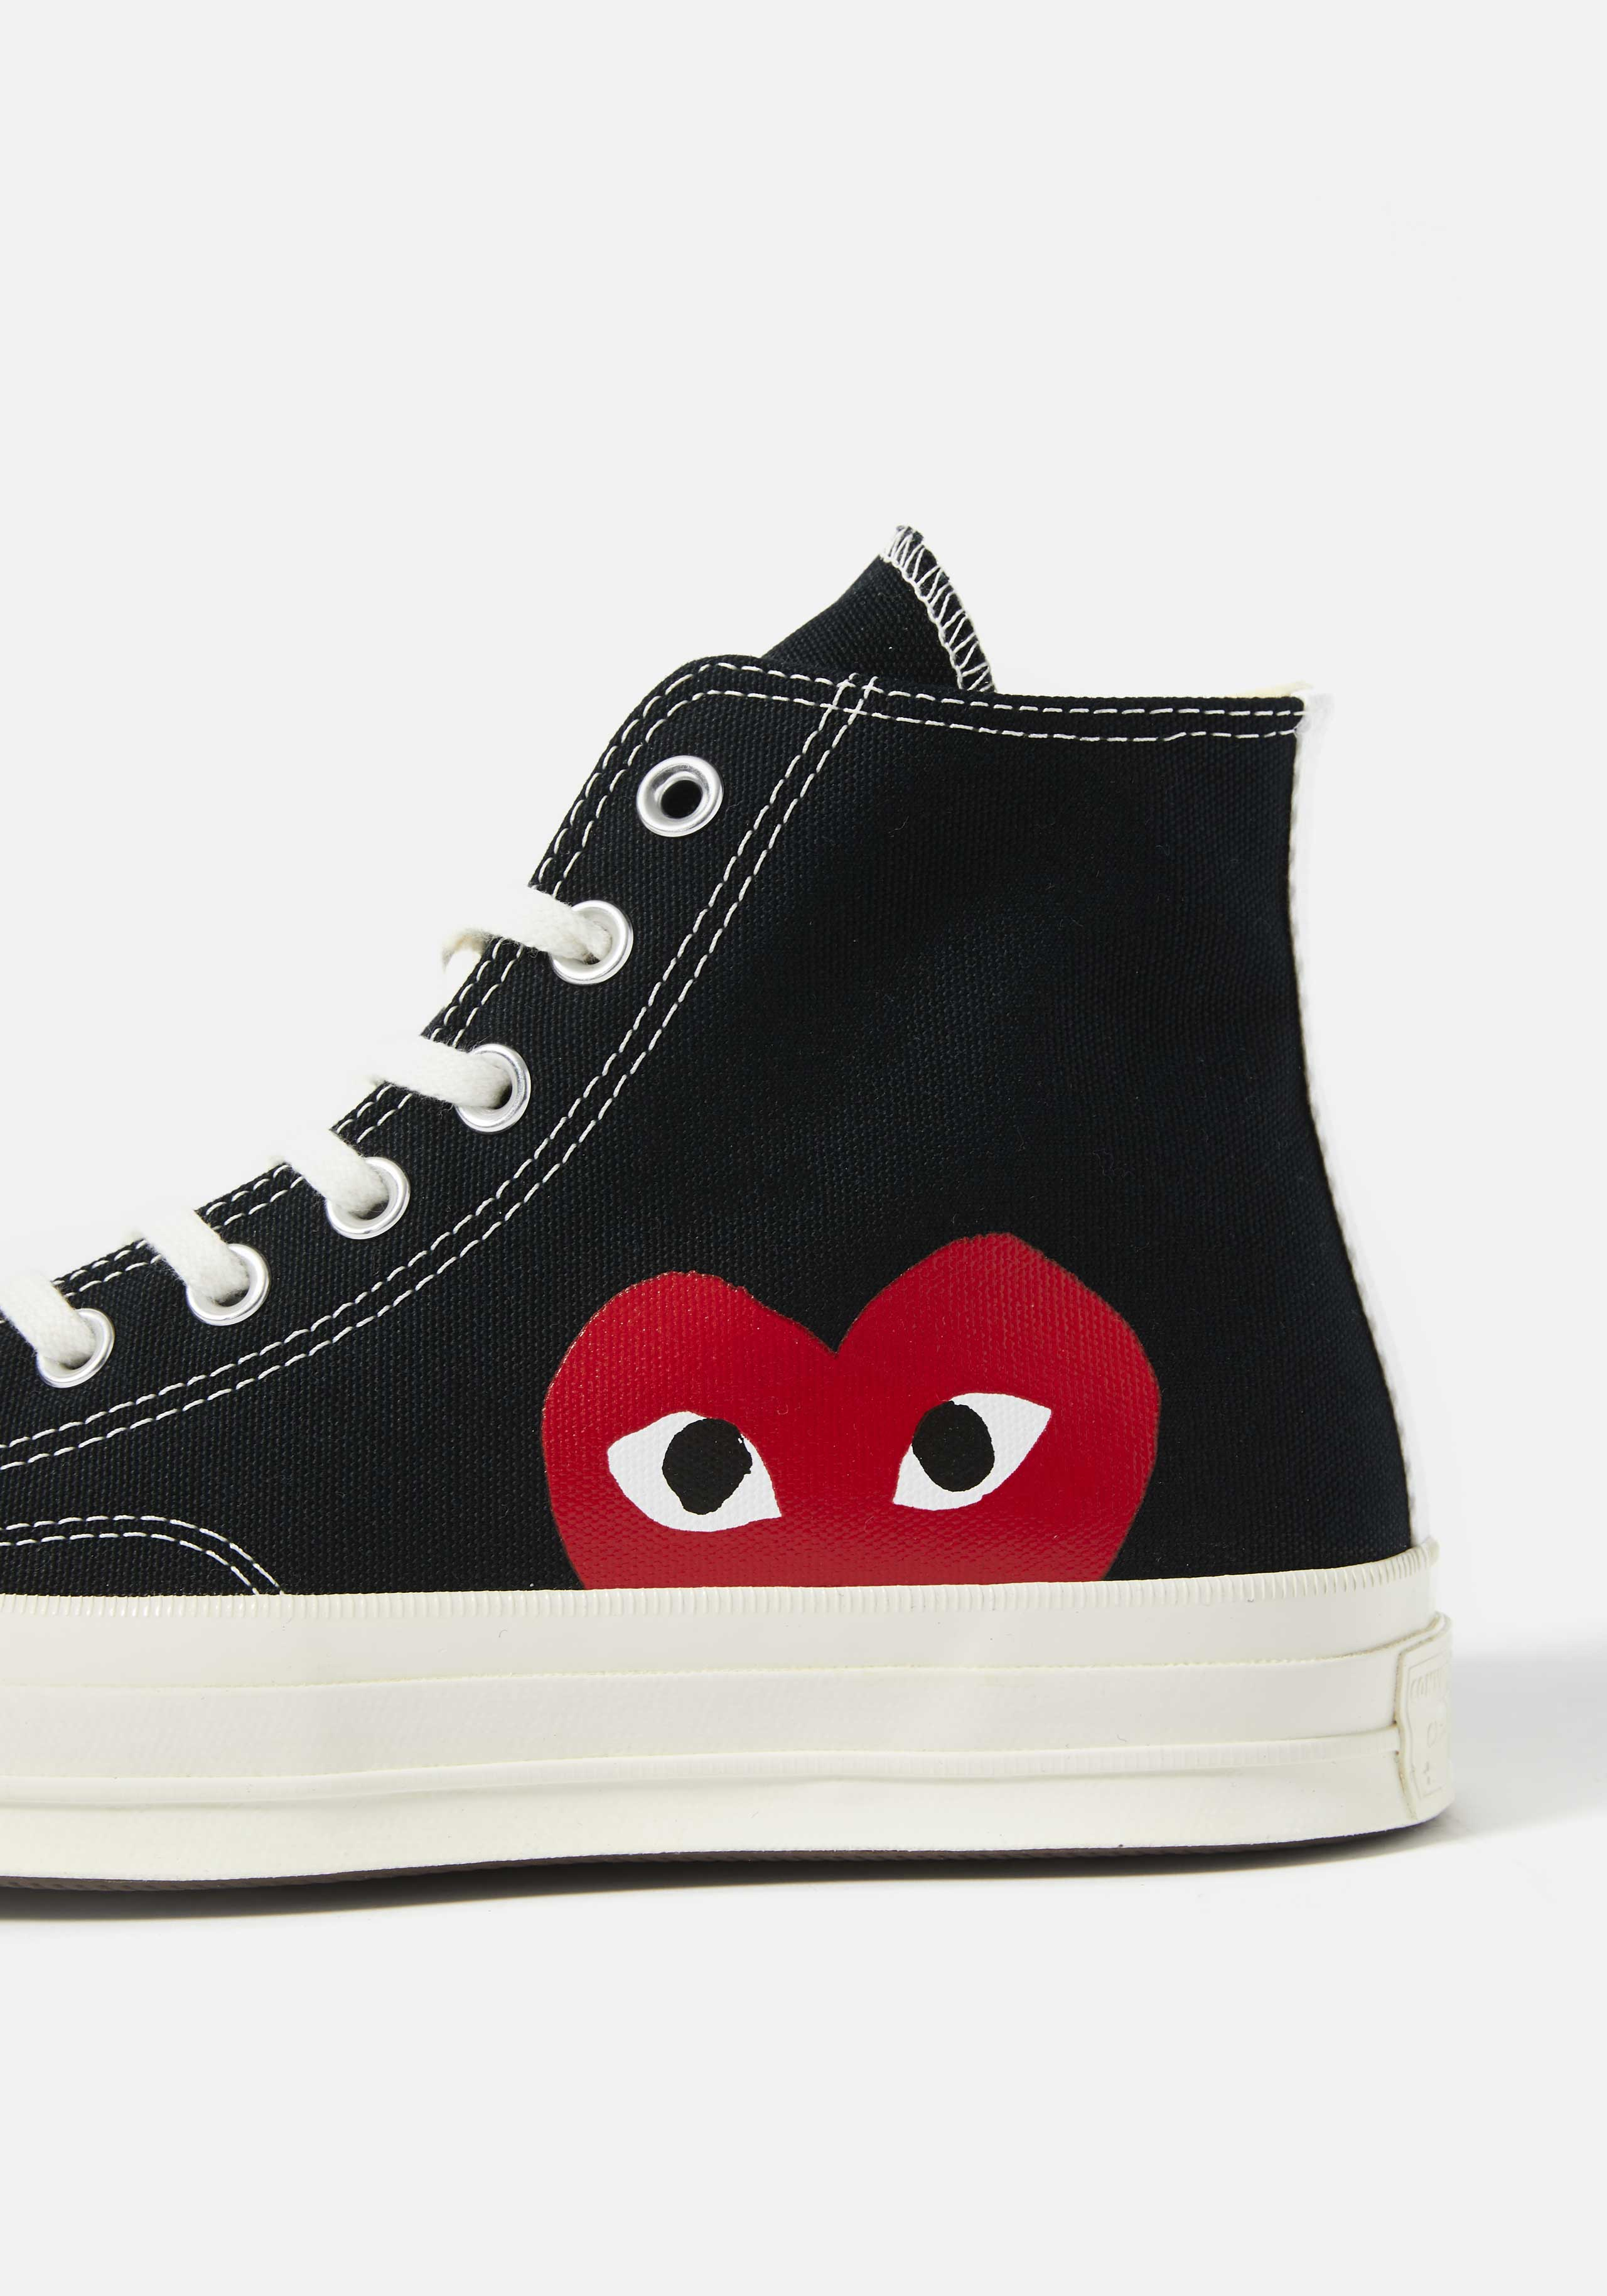 cdg play converse red heart 70s high 4